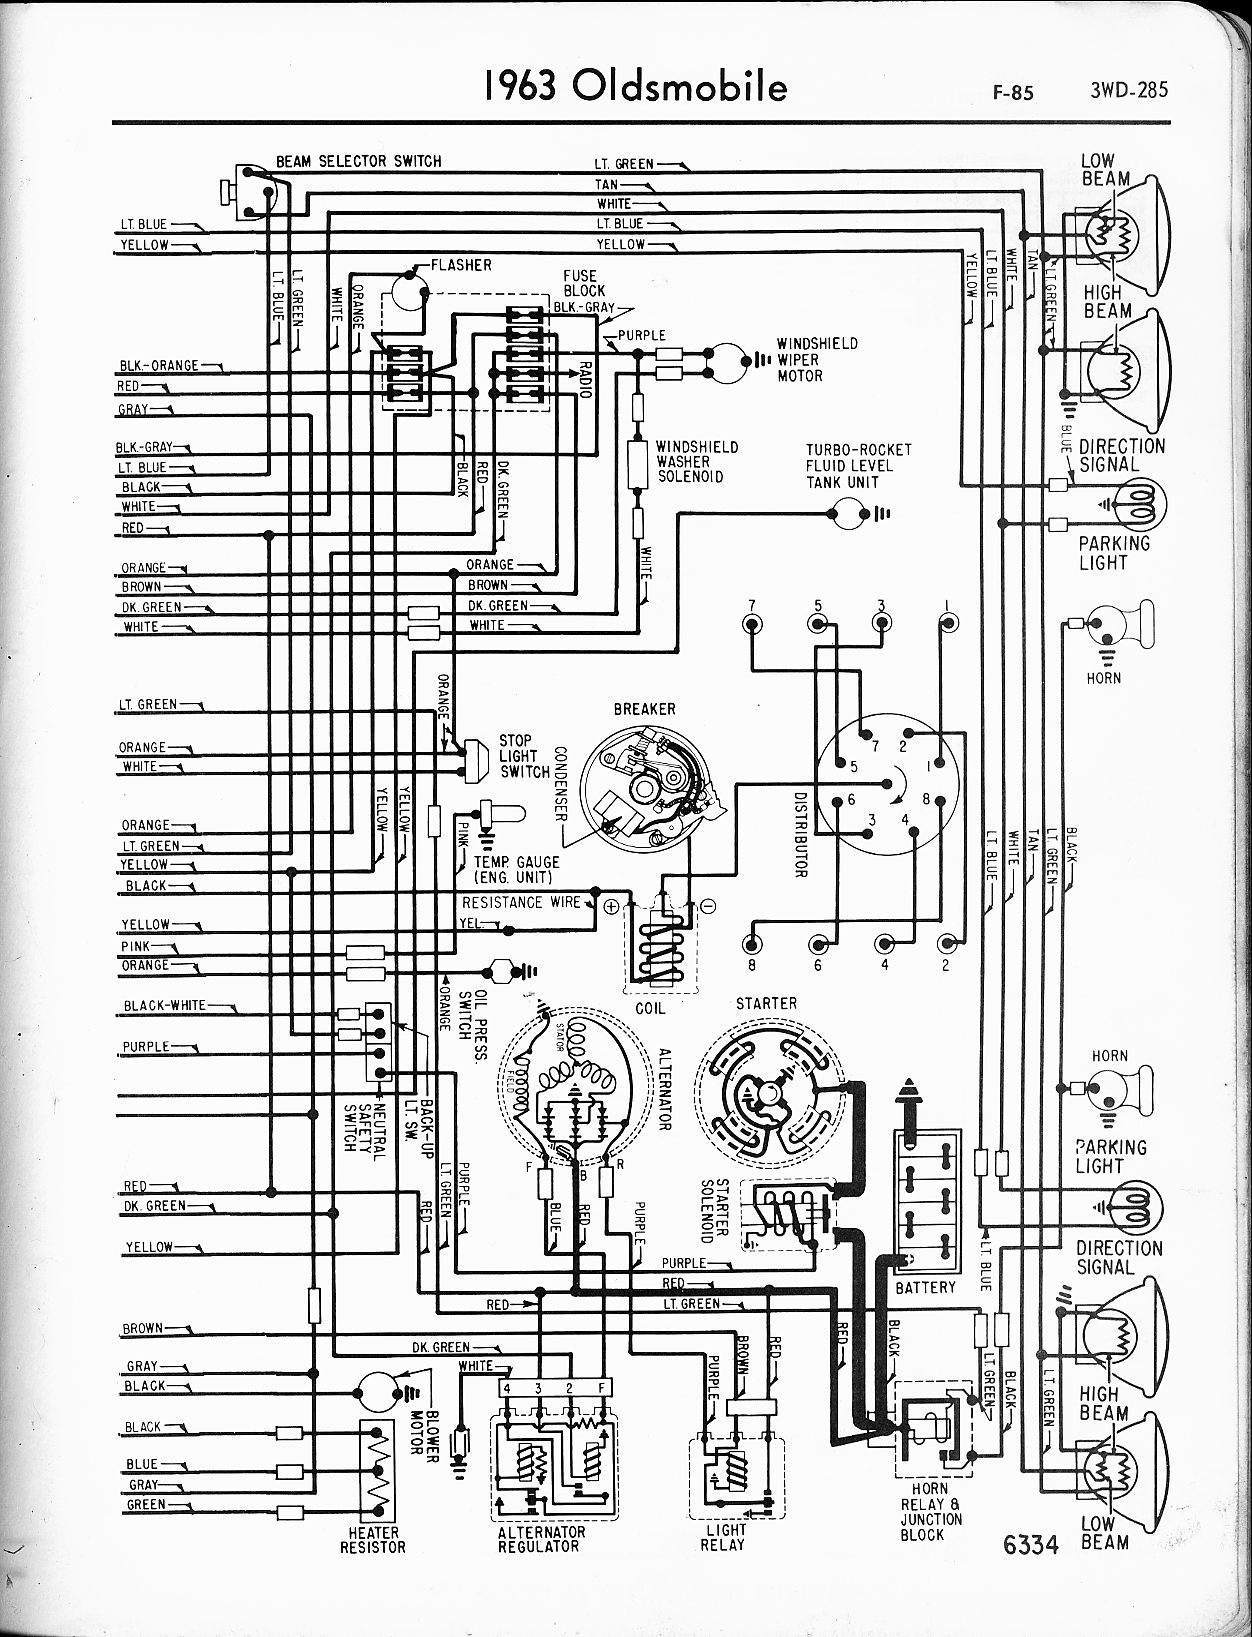 Location Of ABS Relay On 2000 Ford Windstar together with Mitsubishi Lancer Radio Wiring Diagram further 2007 Chevy Cobalt 2 2 Engine in addition 2000 Buick Park Avenue Wiring Diagram further Buick Park Avenue Fuse Diagrams. on ignition wire diagram 1997 buick park